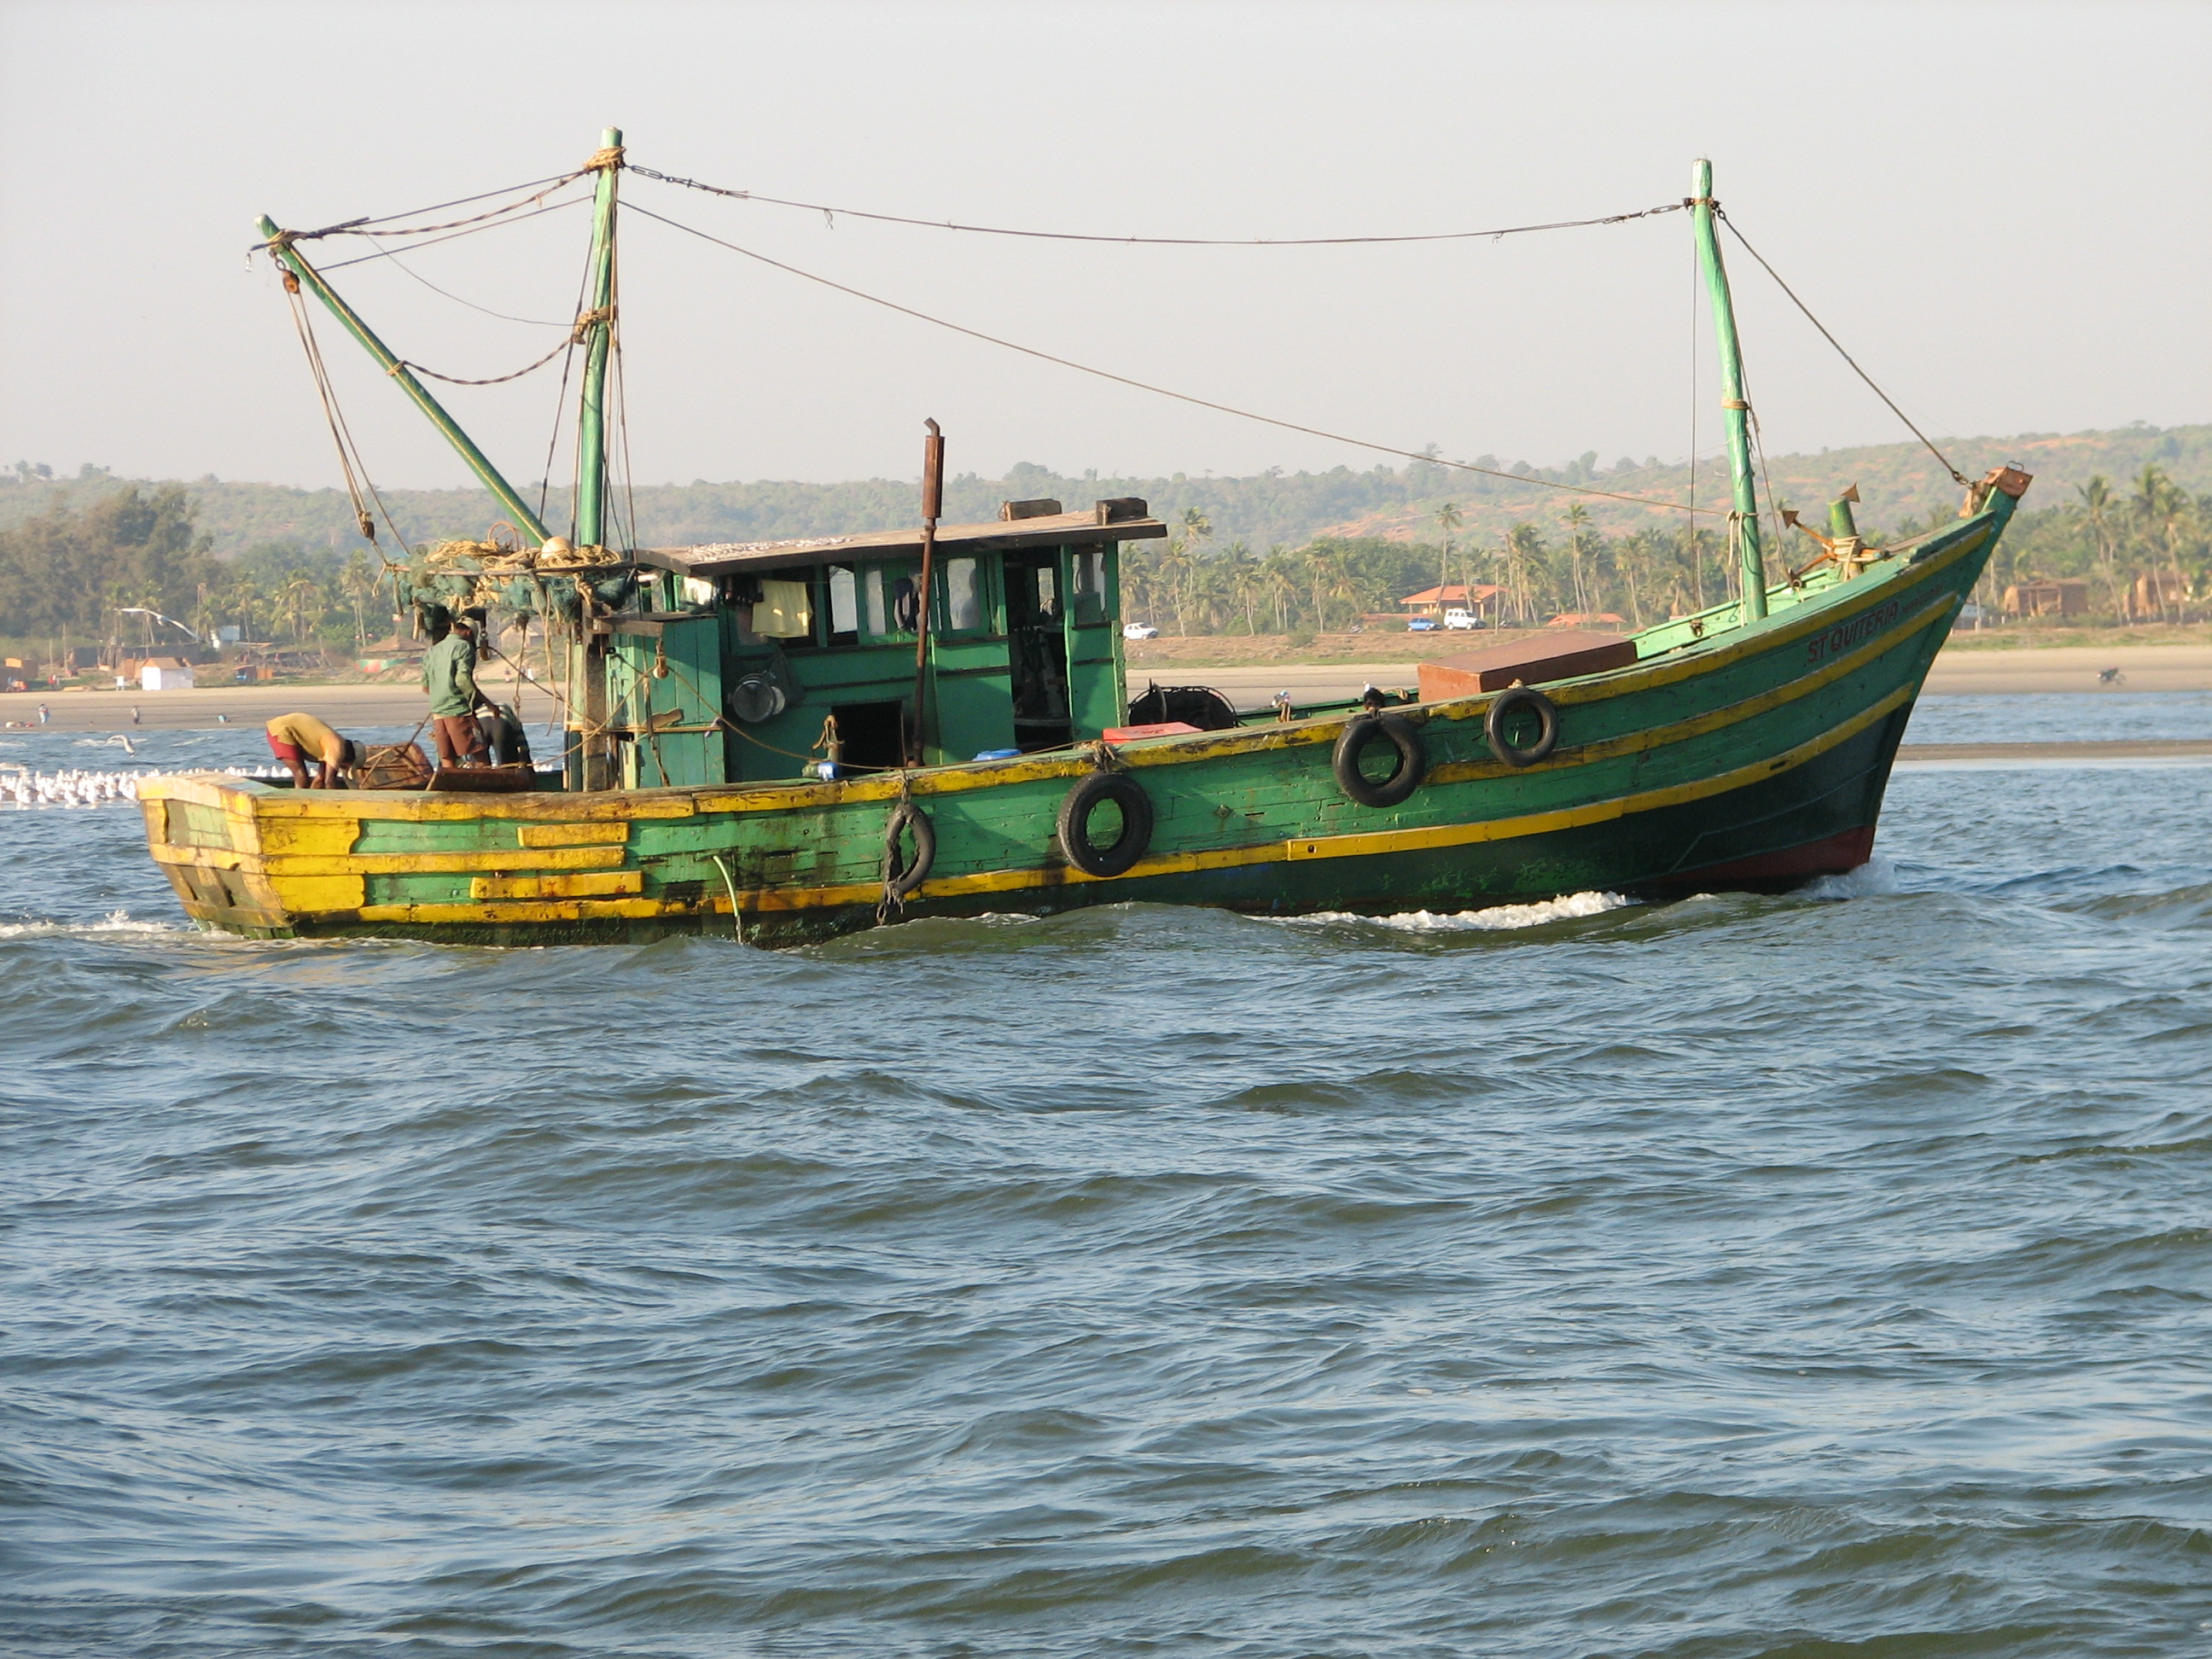 Fishing boats photo